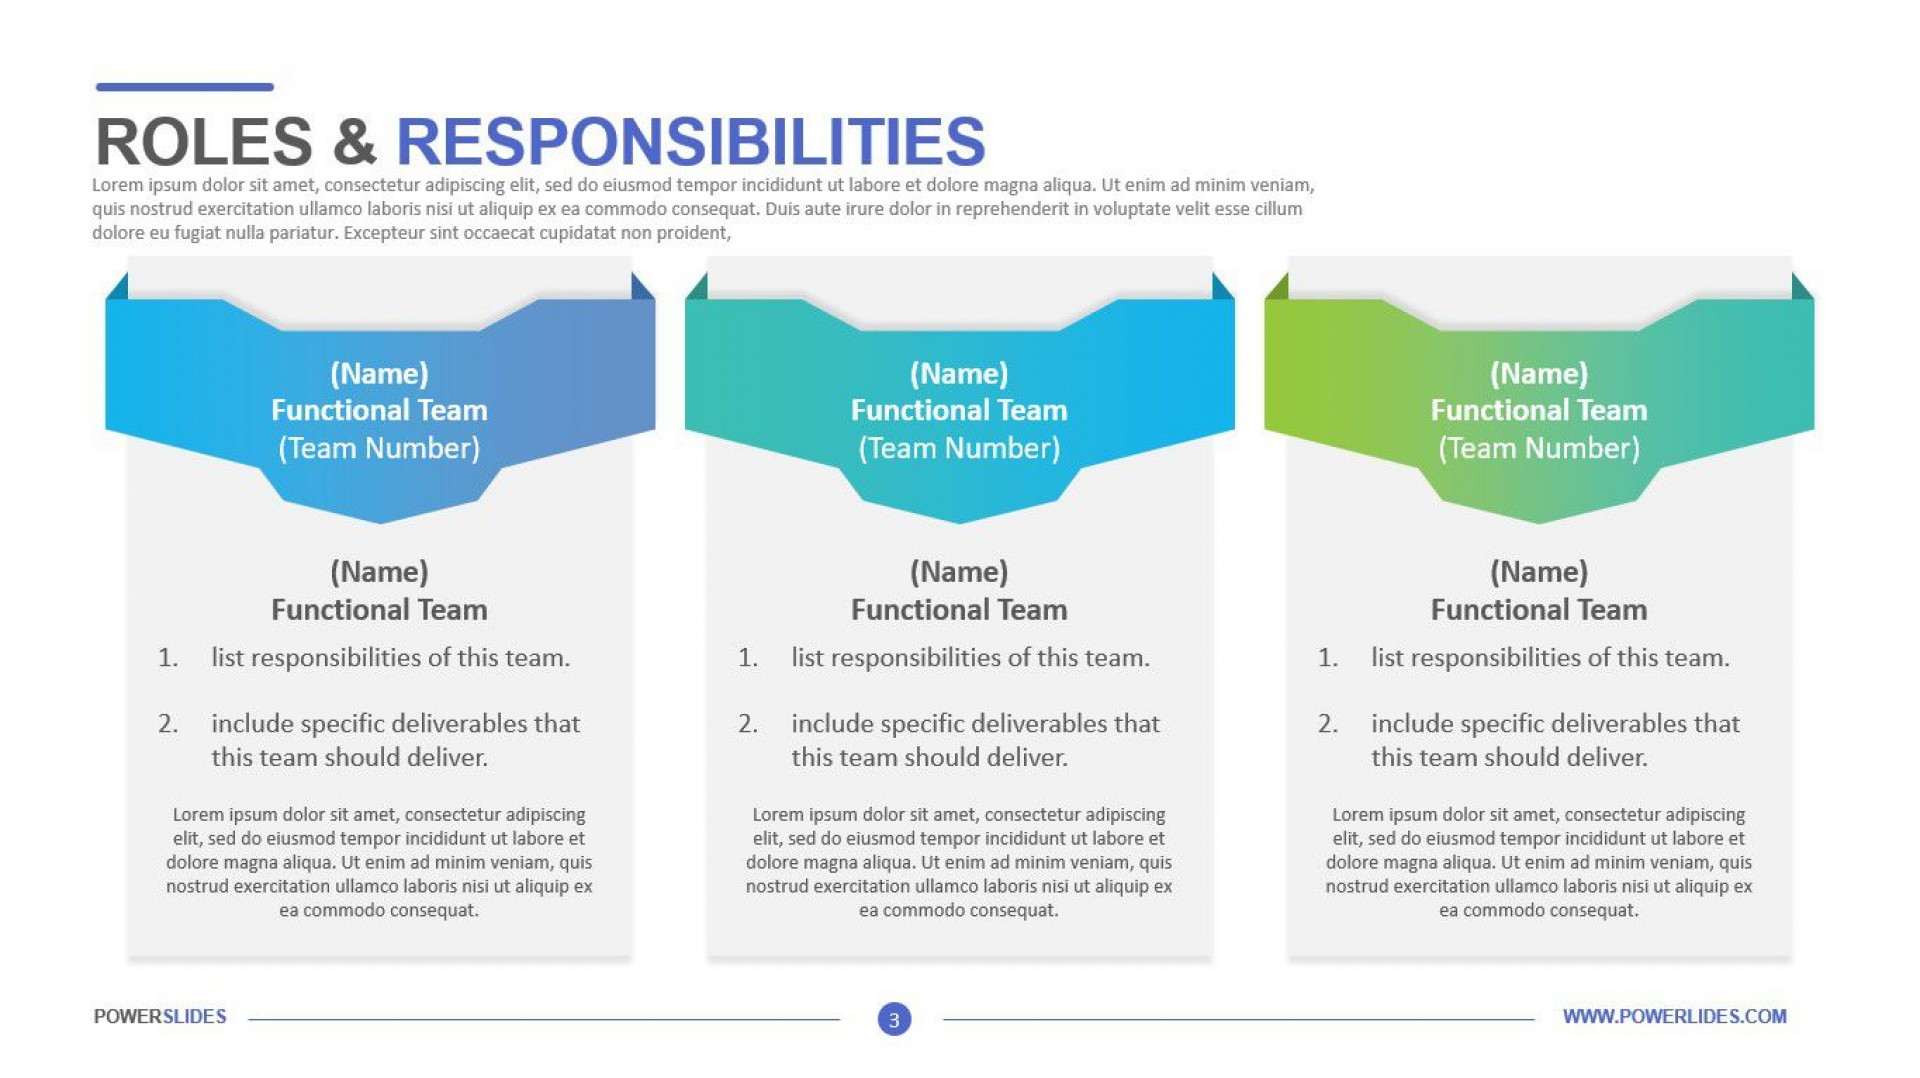 009 Awesome Project Role And Responsibilitie Template Powerpoint Picture 1920